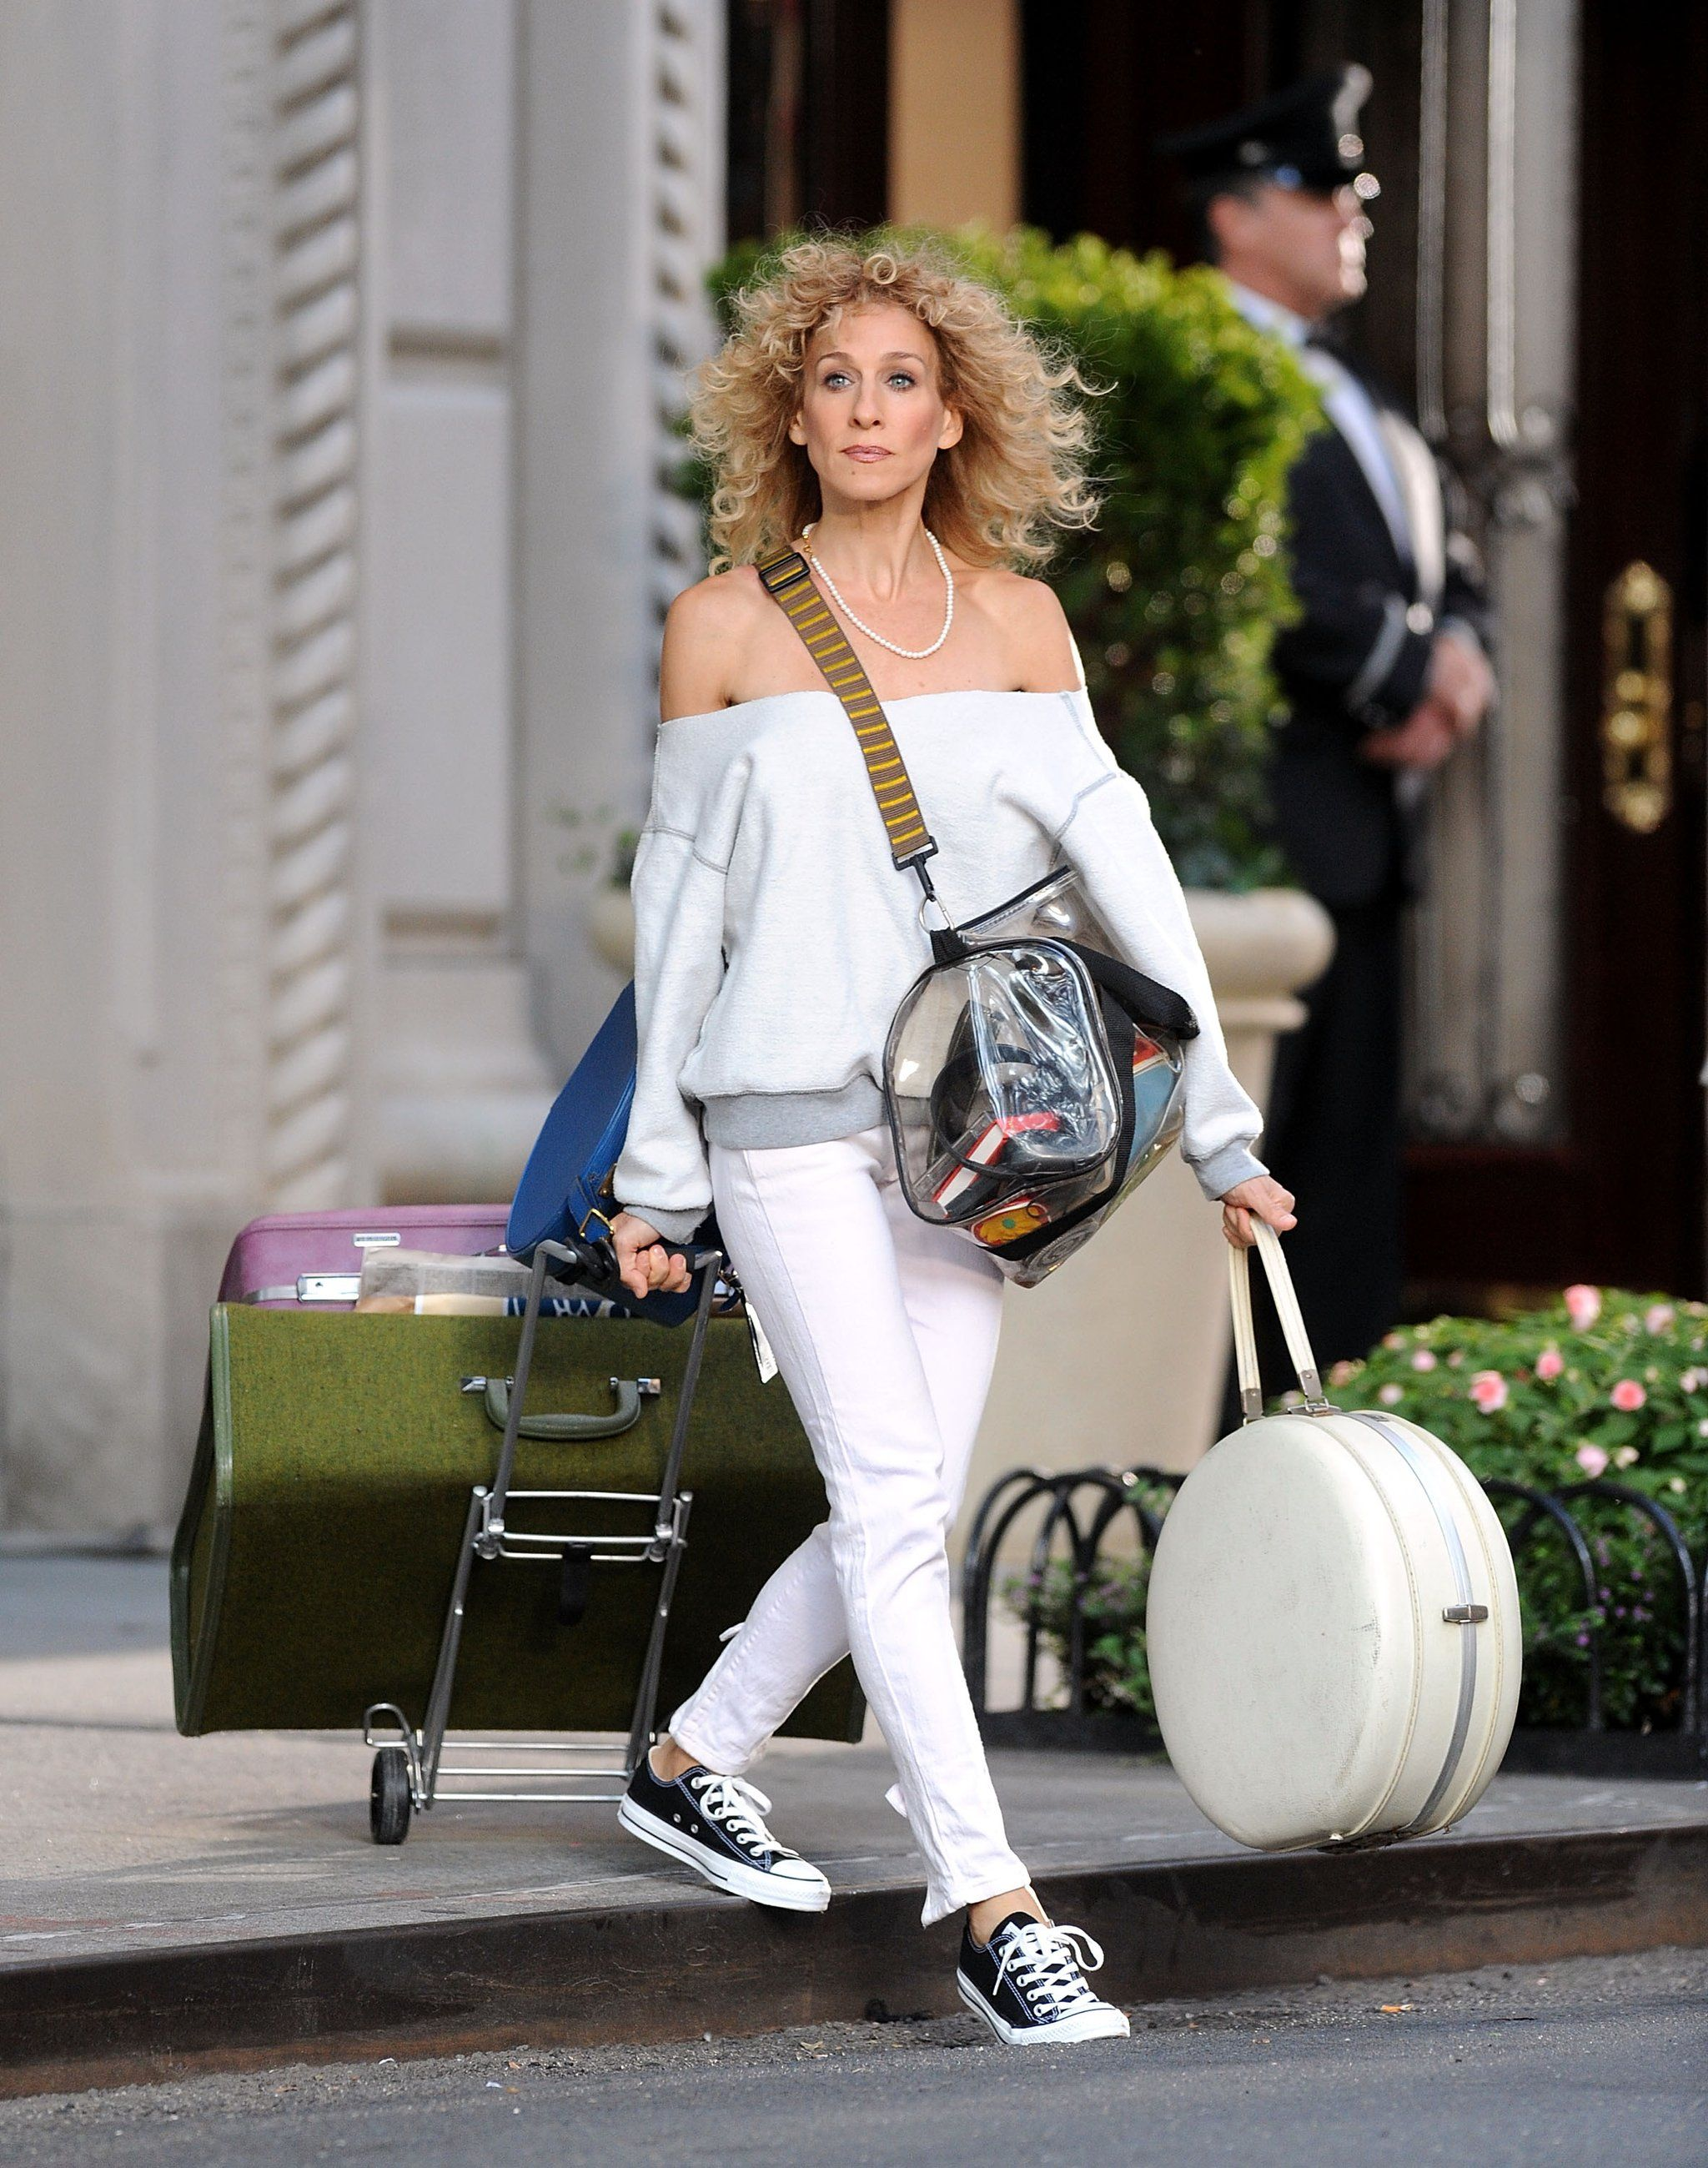 Carrie Bradshaw wearing a white sweater and jeans and black and white sneakers, holding bags and luggage